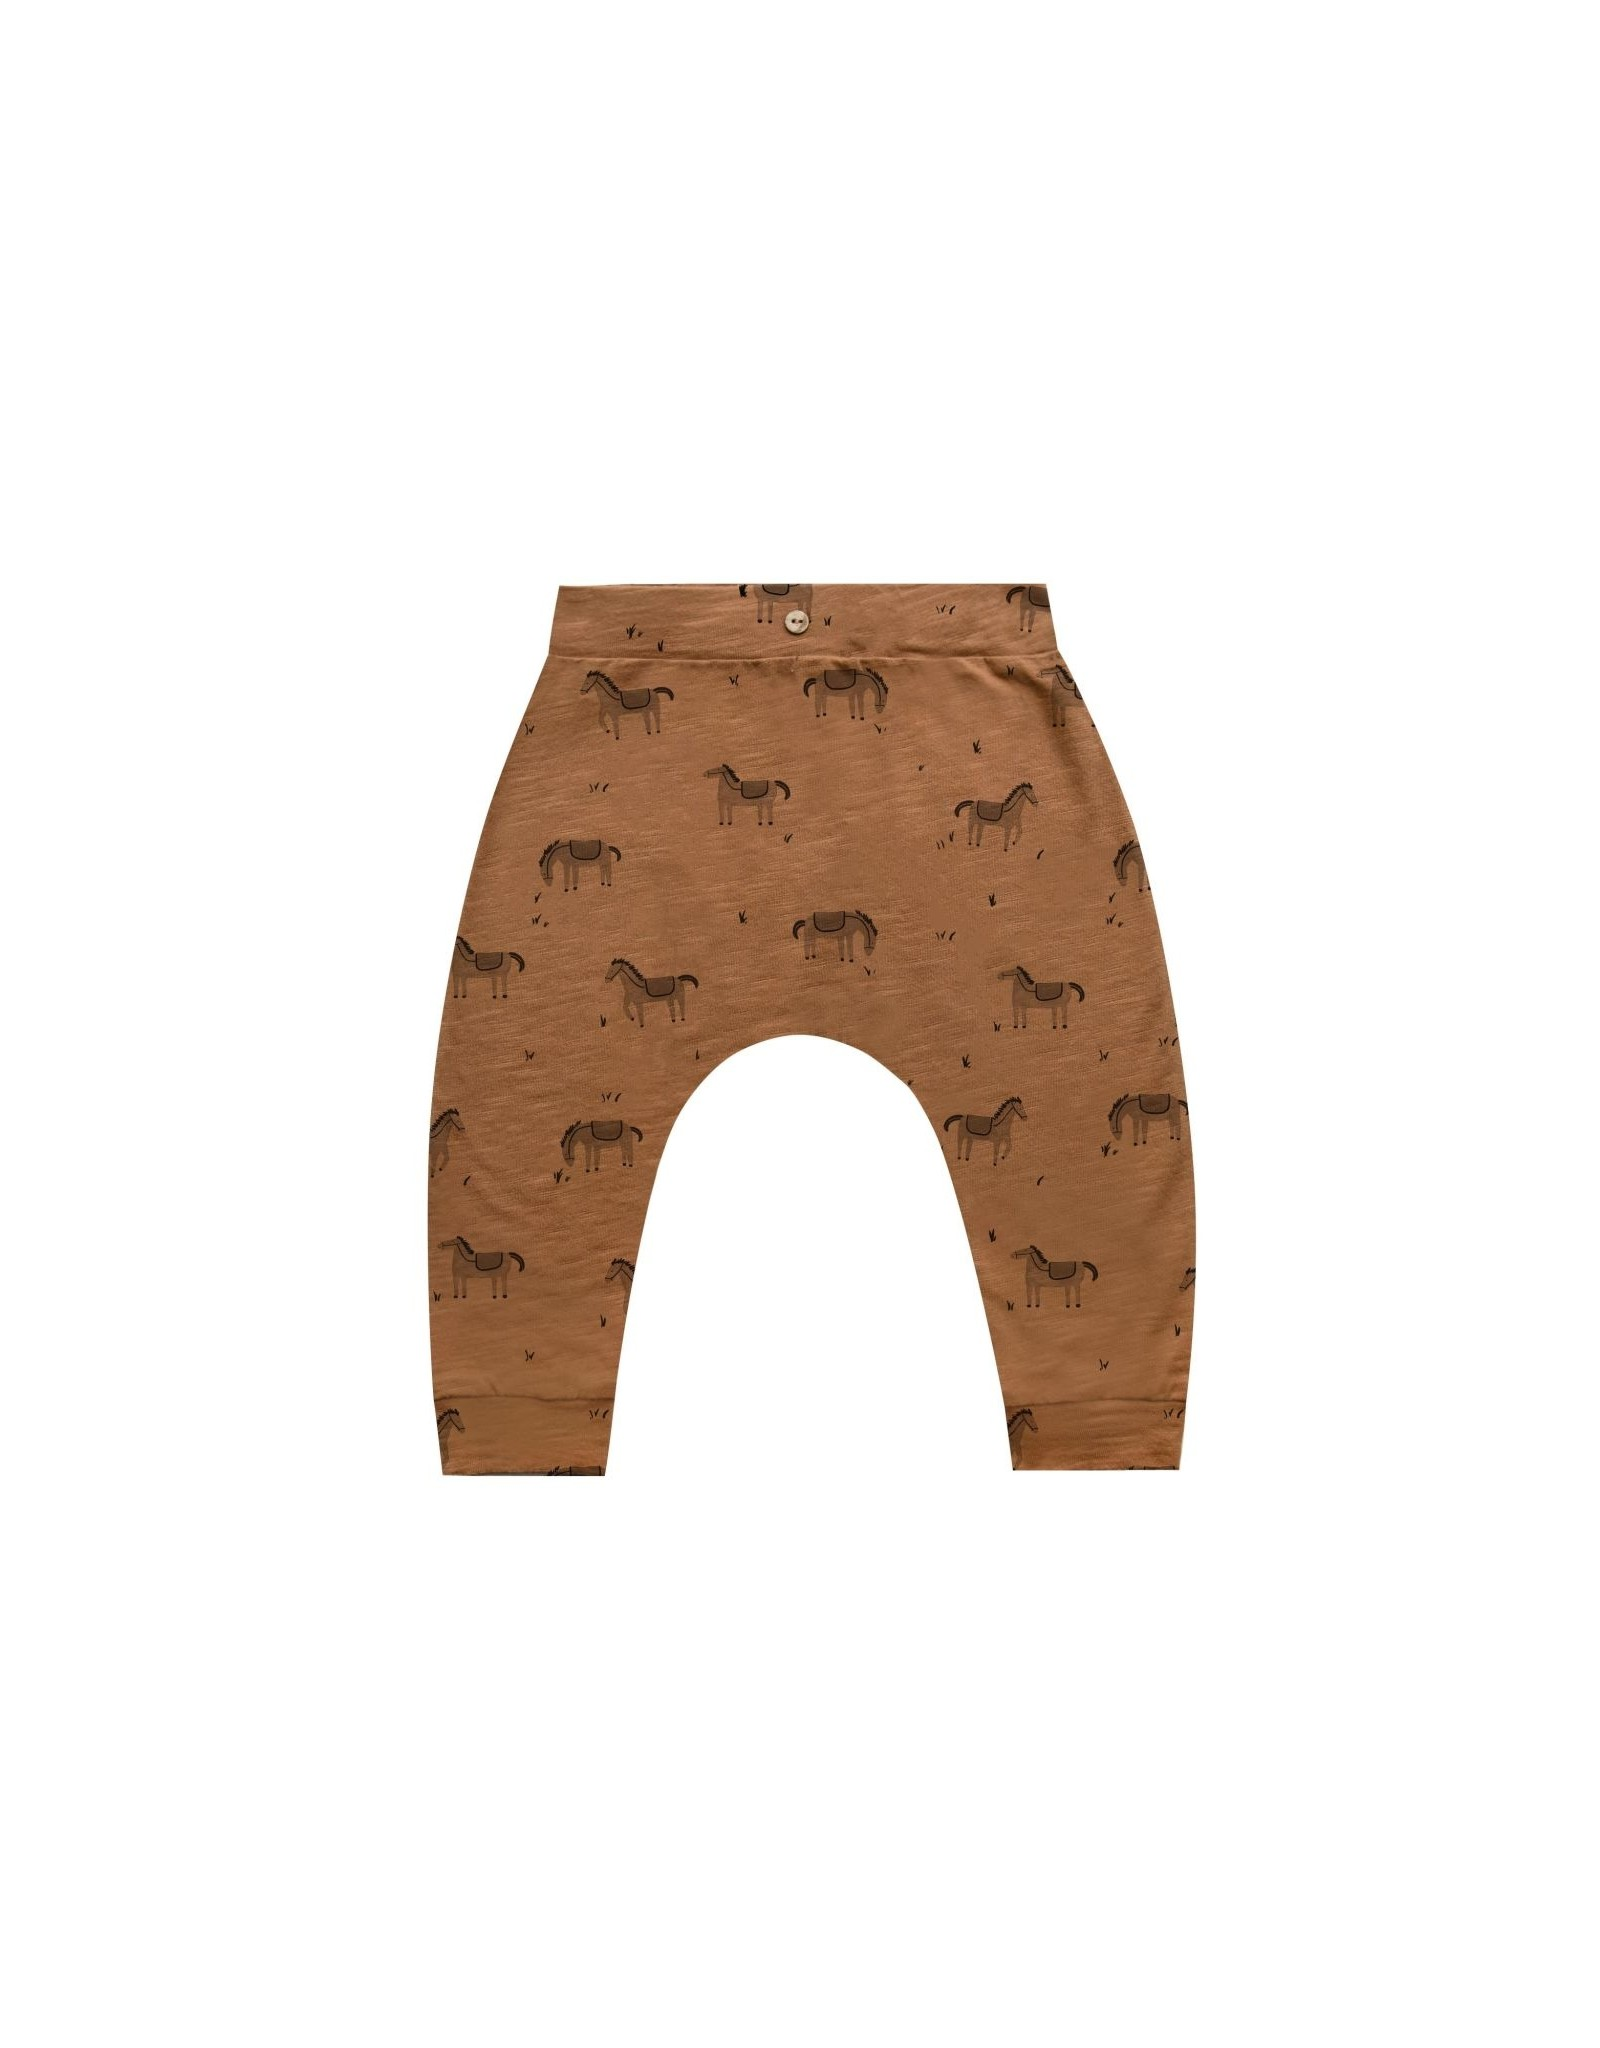 Rylee and Cru slouch pant- wild horses